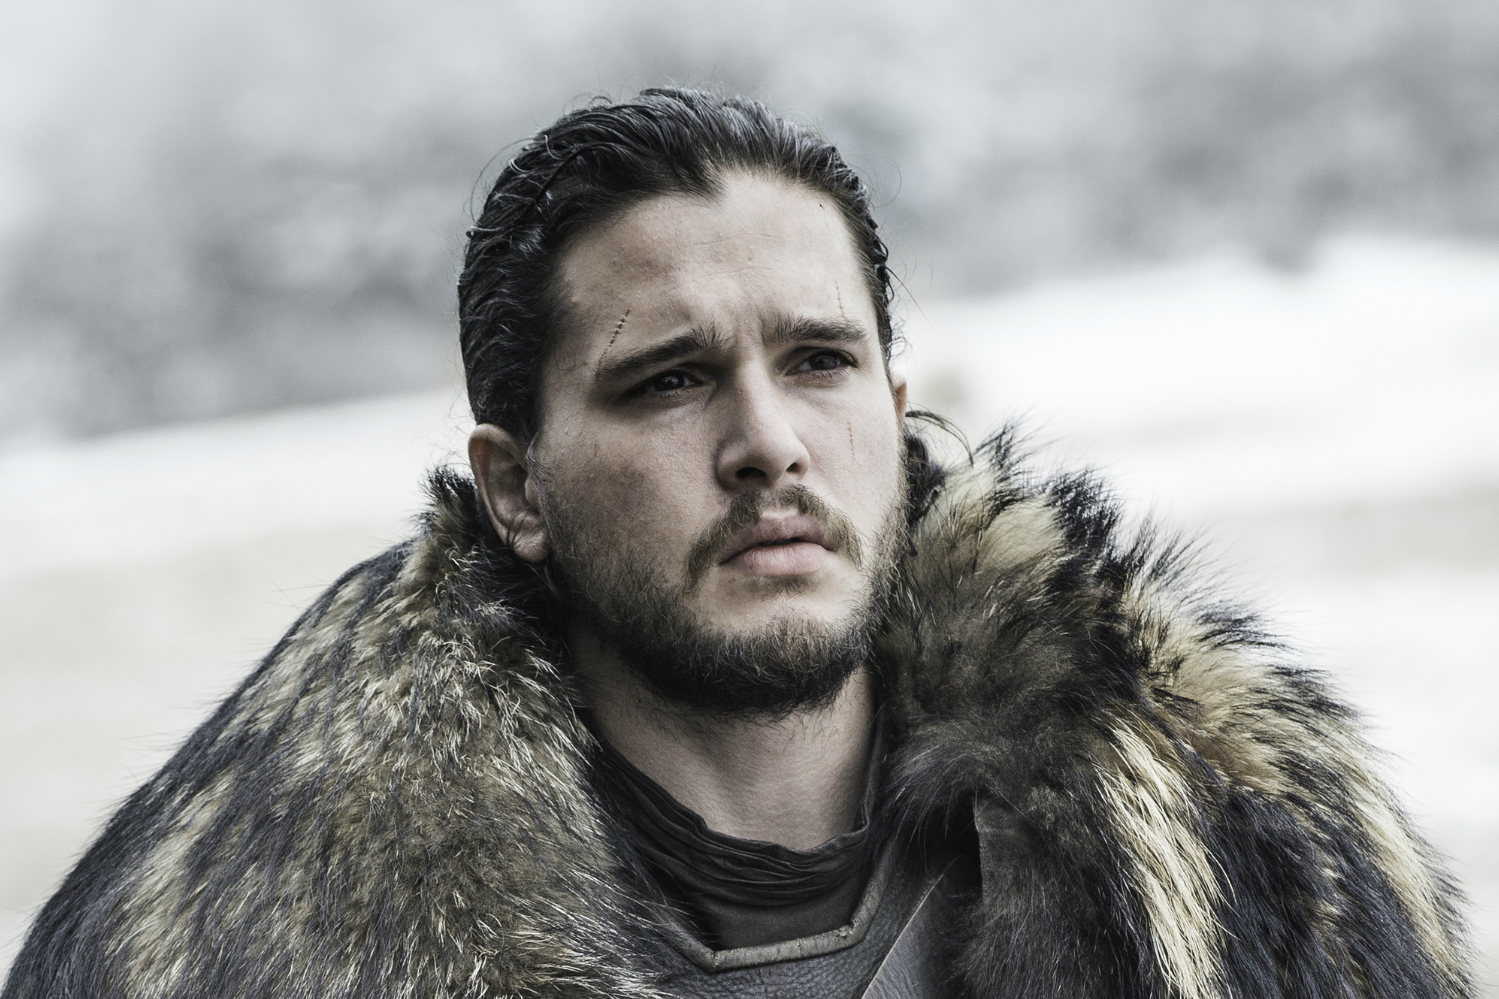 HBO confirmed who Jon Snow's father is